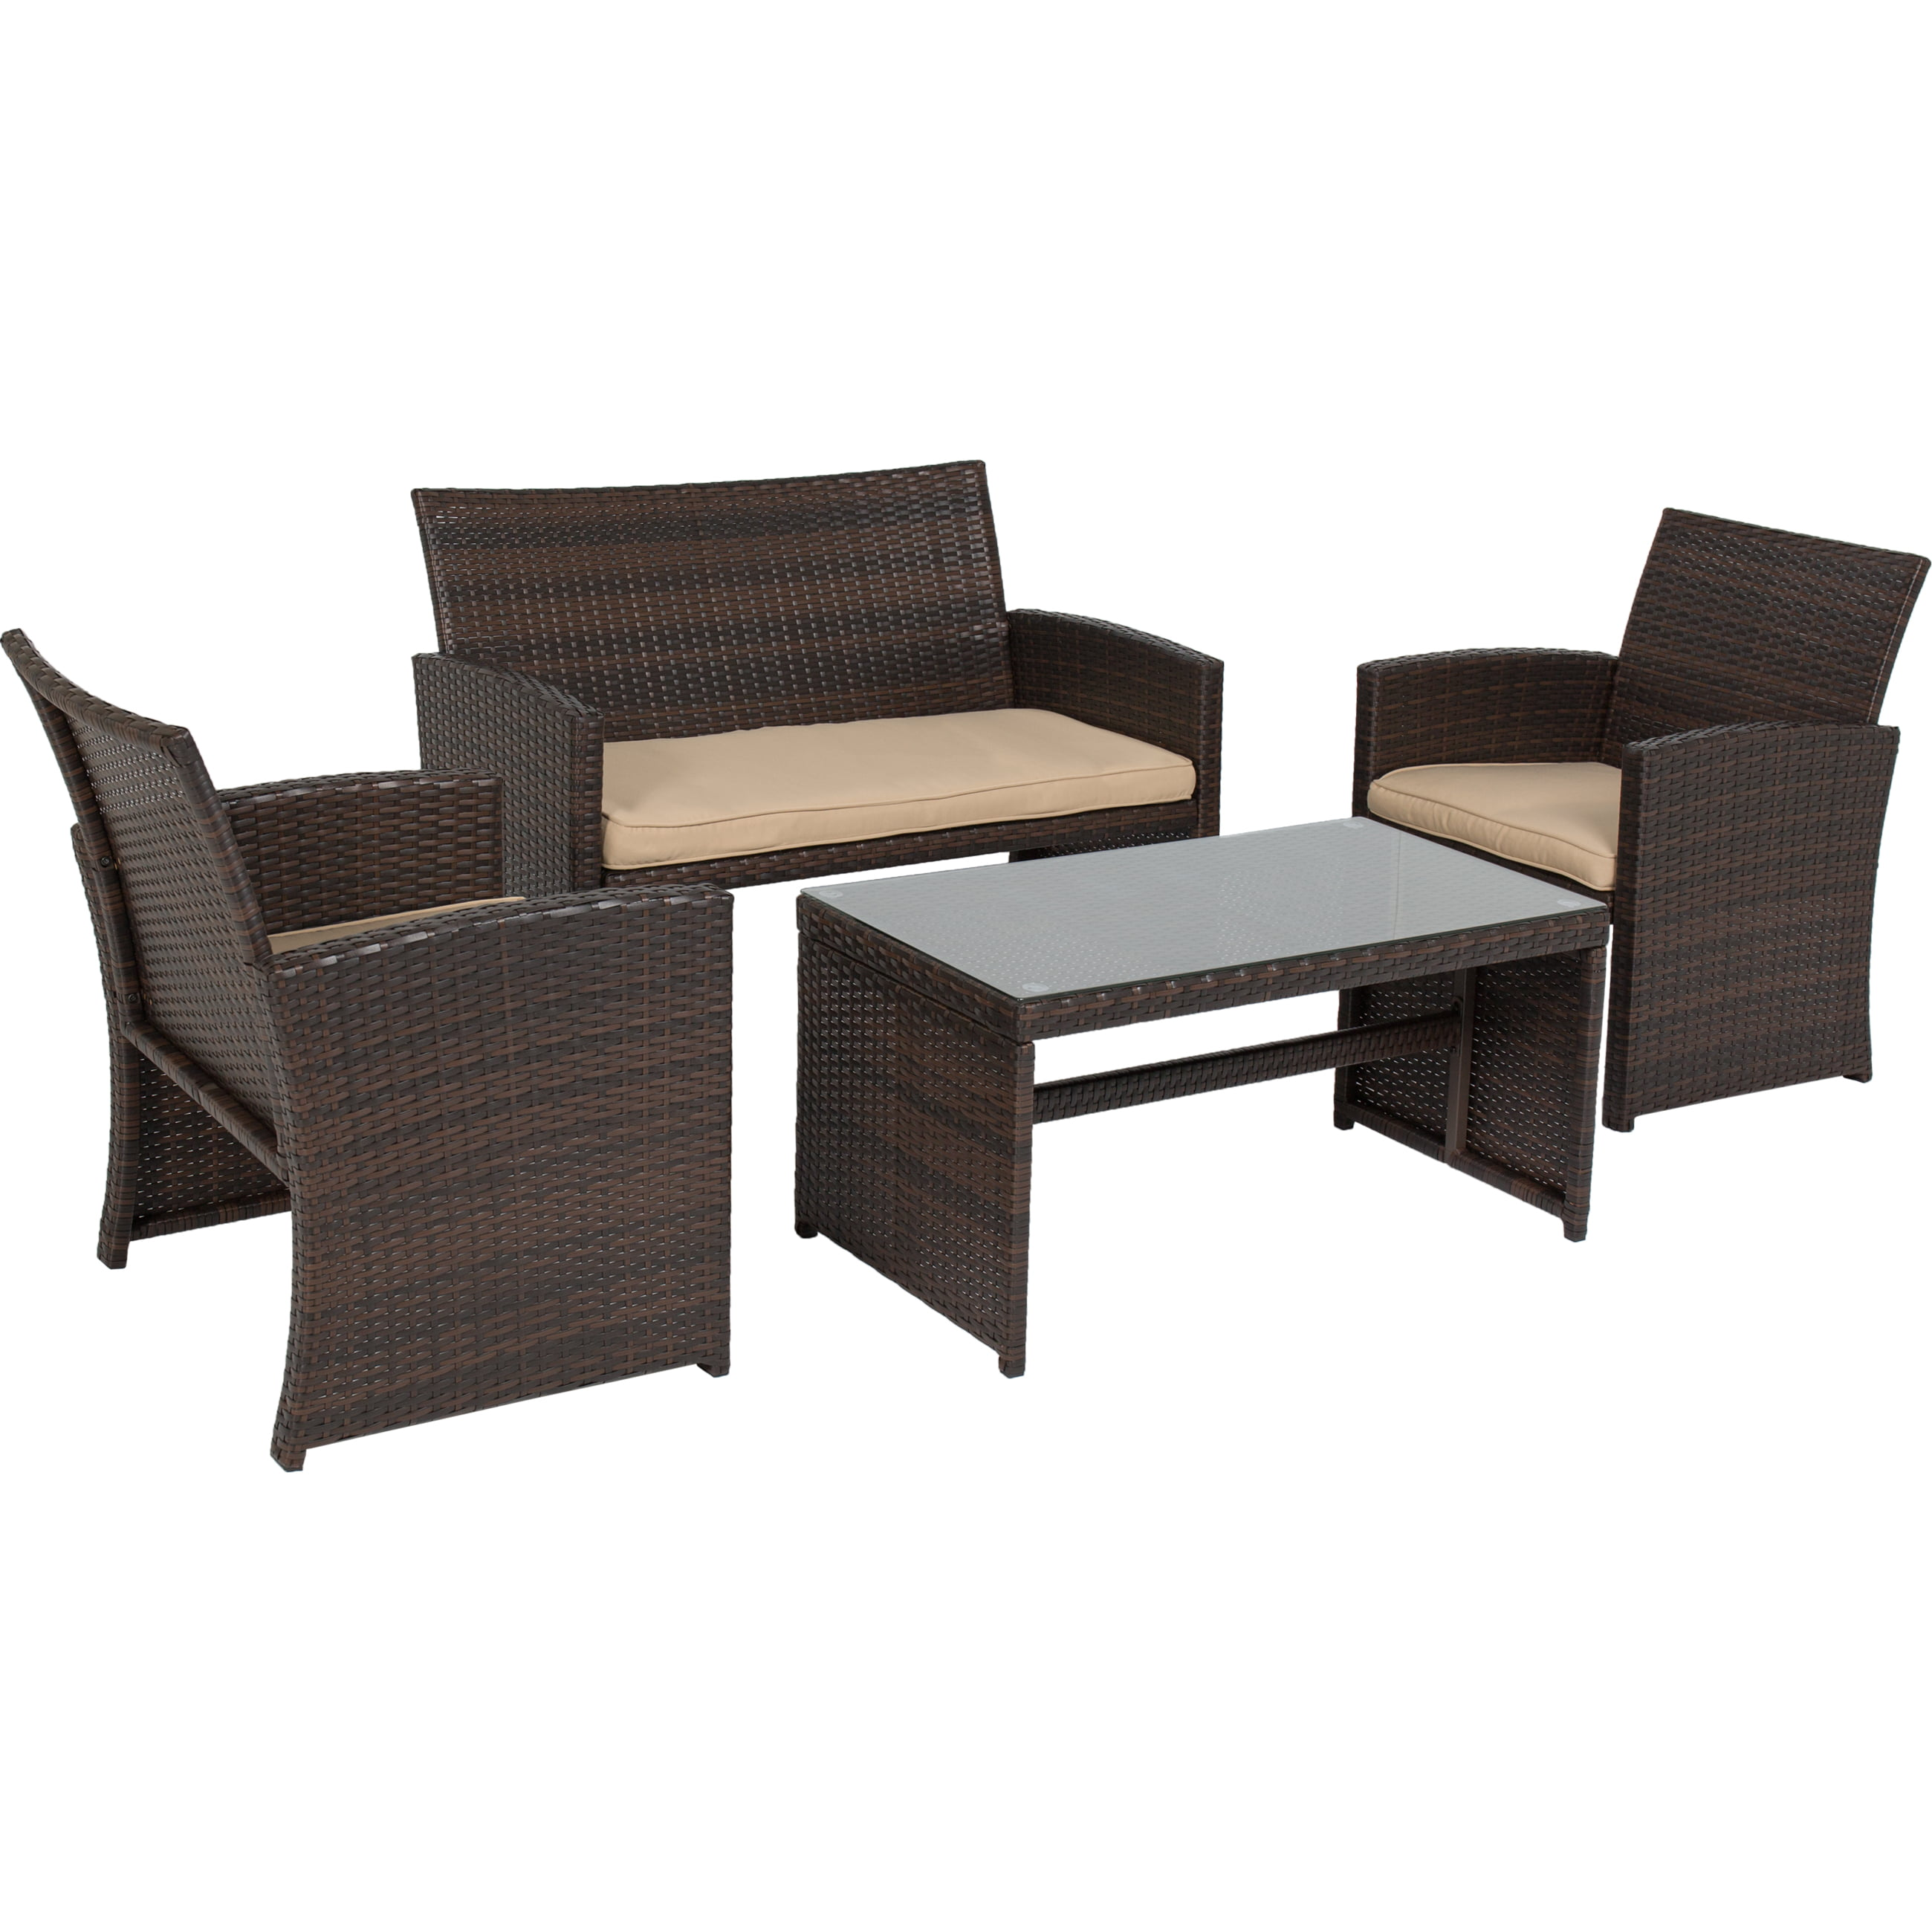 Best Choice Products 4pc Wicker Outdoor Patio Furniture Set ...